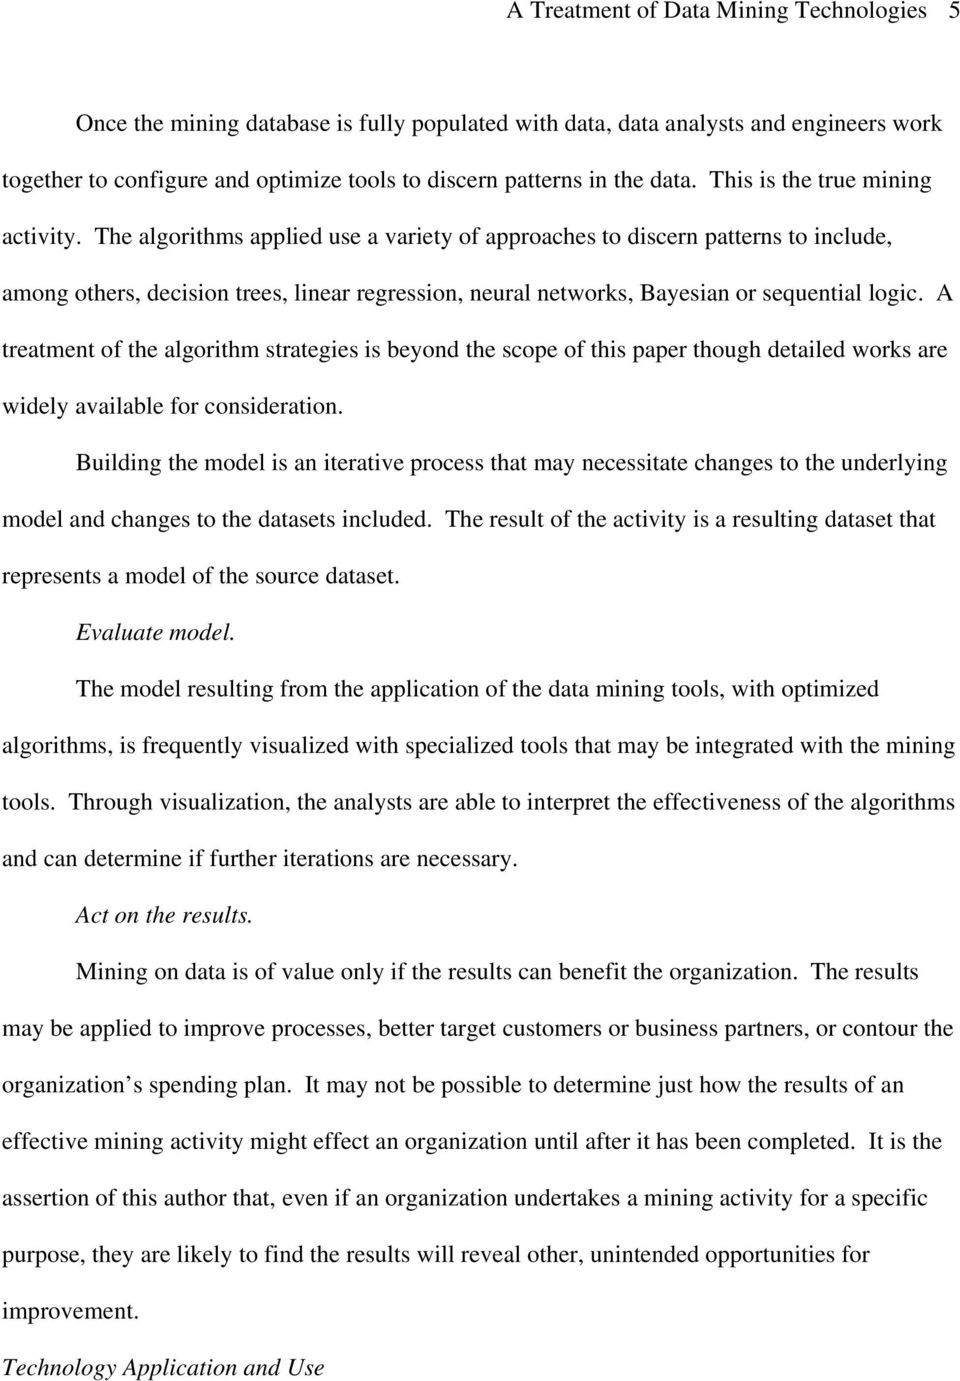 The algorithms applied use a variety of approaches to discern patterns to include, among others, decision trees, linear regression, neural networks, Bayesian or sequential logic.